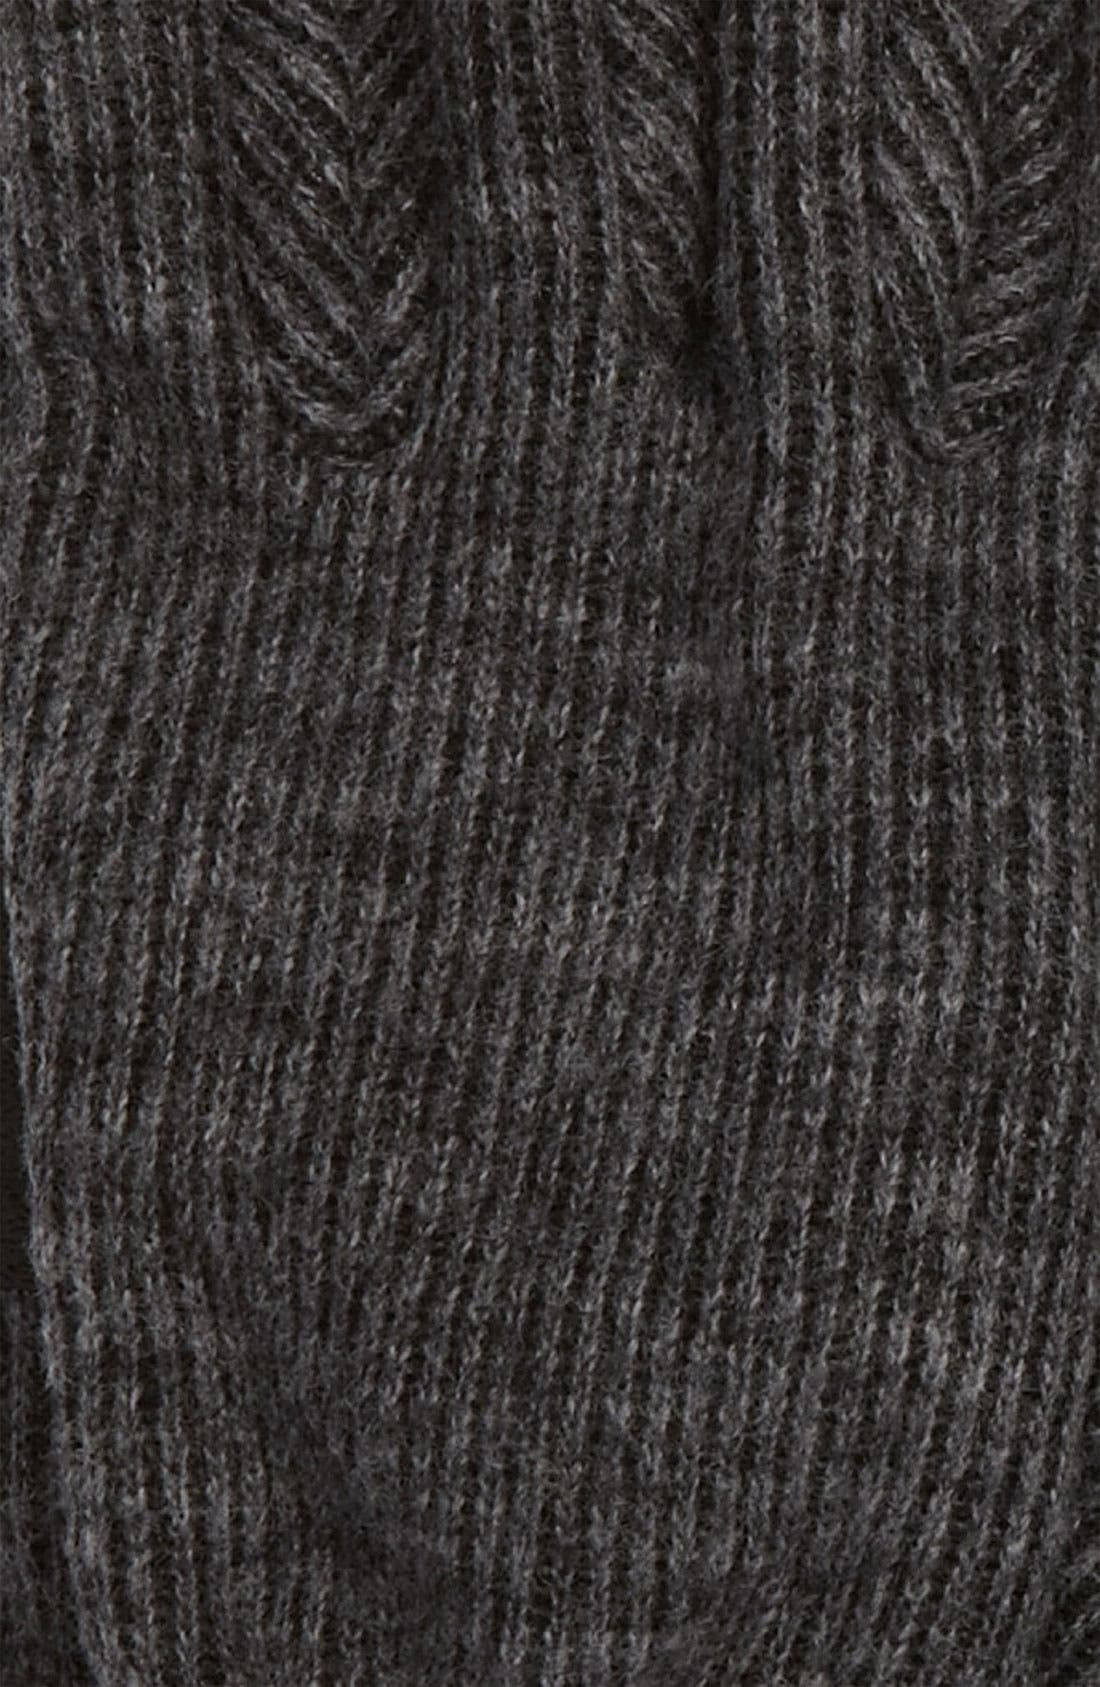 Knit Touch Screen Gloves,                             Alternate thumbnail 2, color,                             022